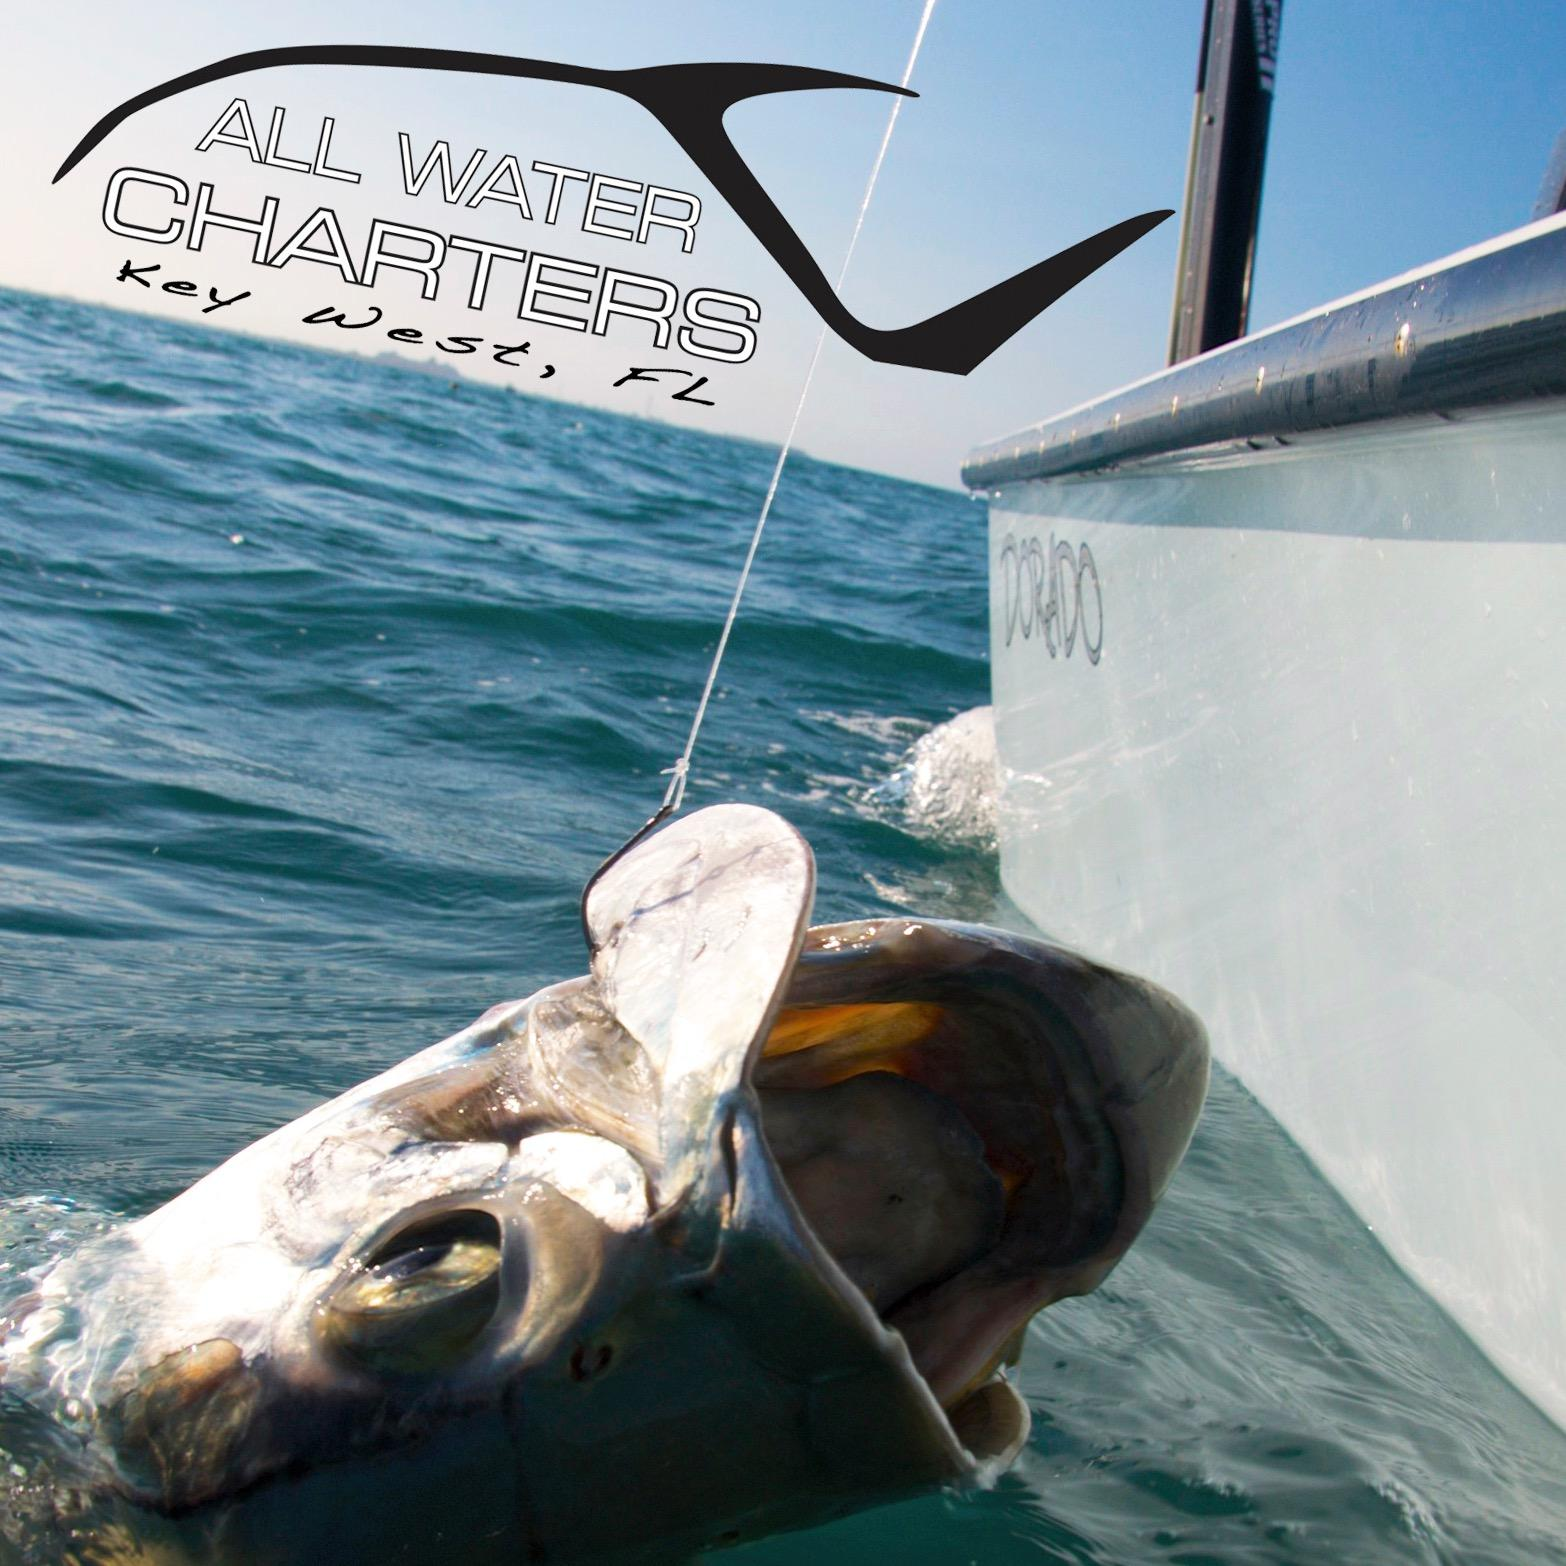 All Water Charters